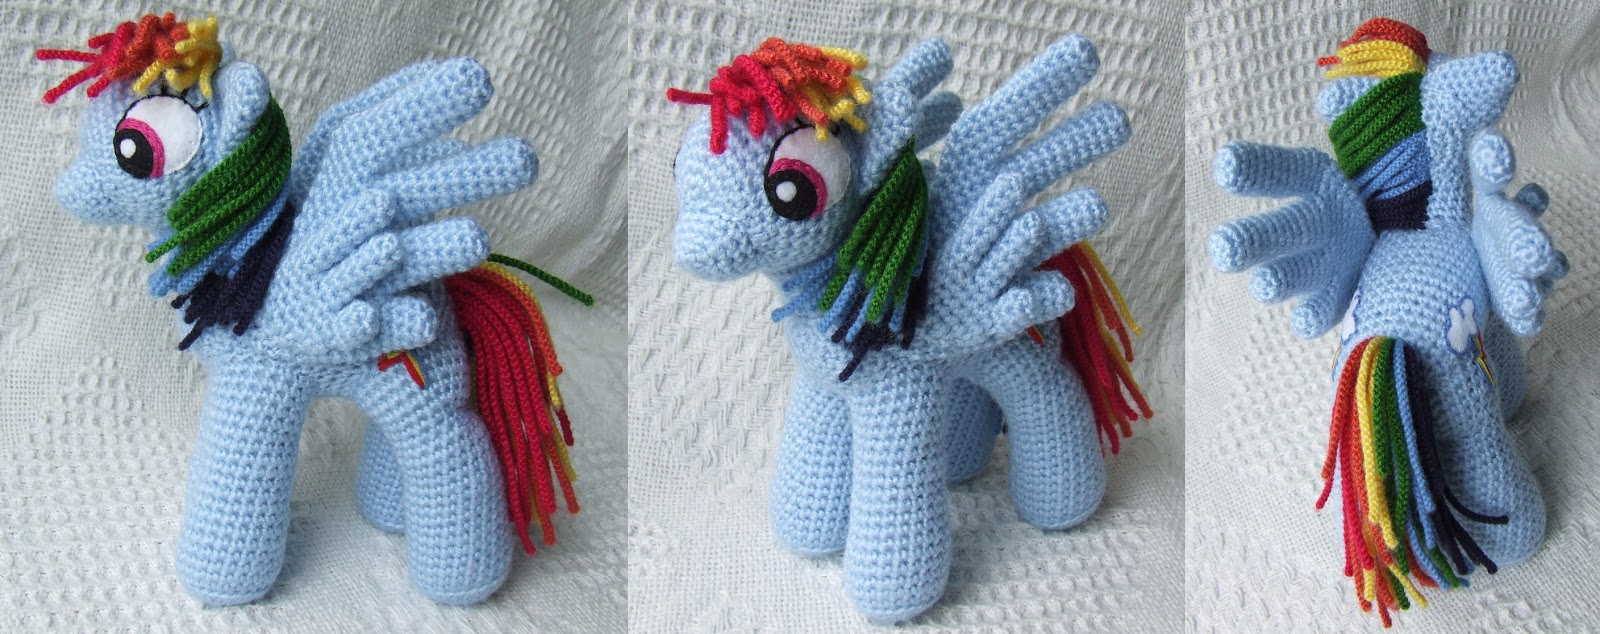 Knit One Awe Some: My Little Pony: Friendship is Magic